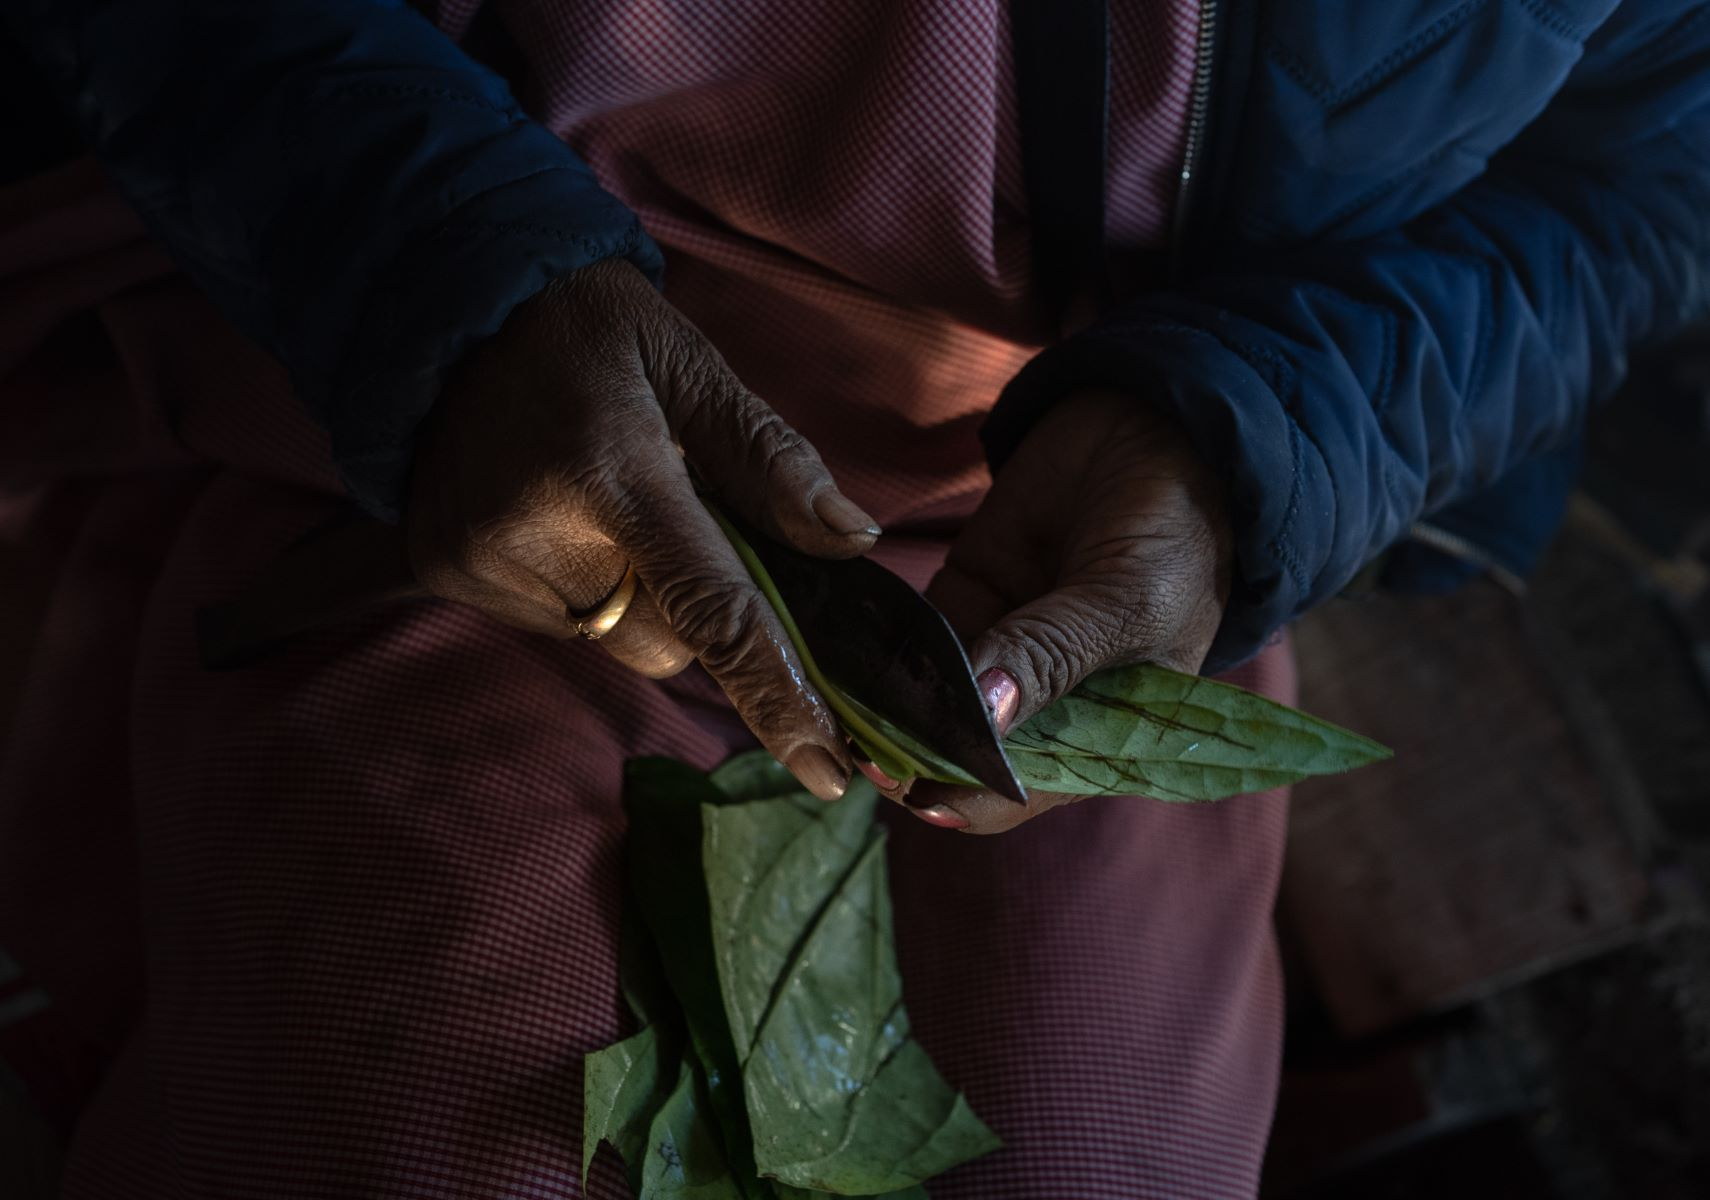 Photograph of betel-nut leaves to be served to one of the customers